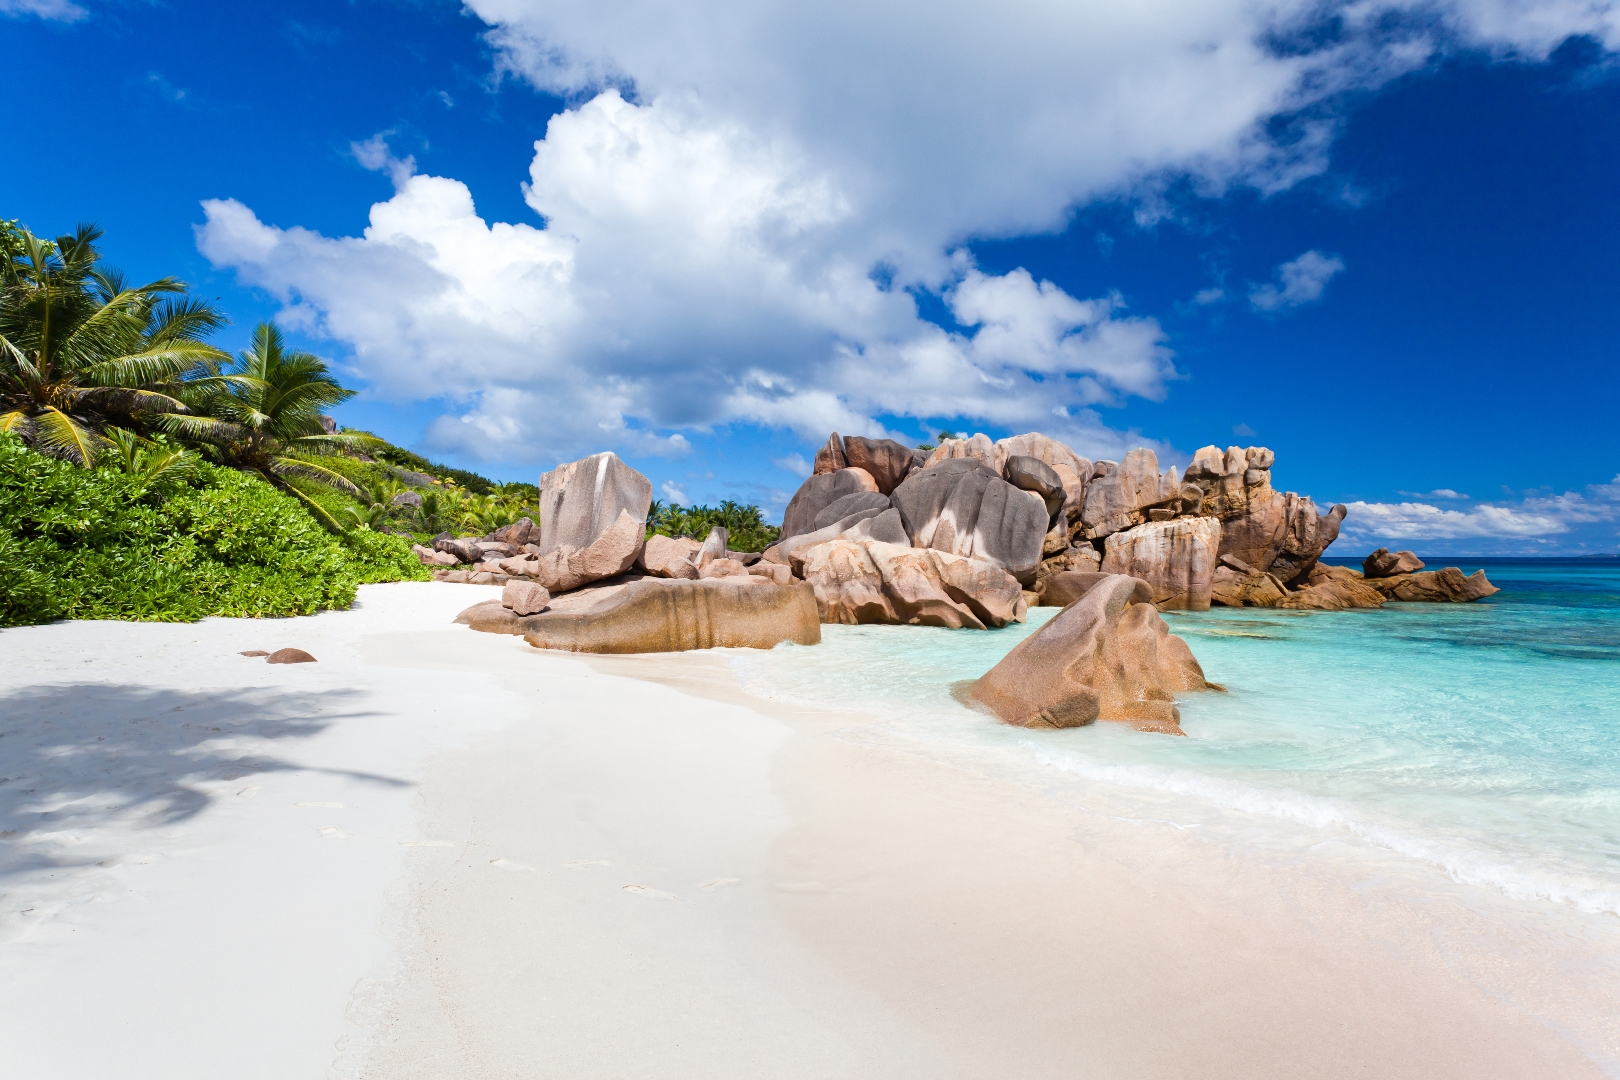 photo: seychelles.org